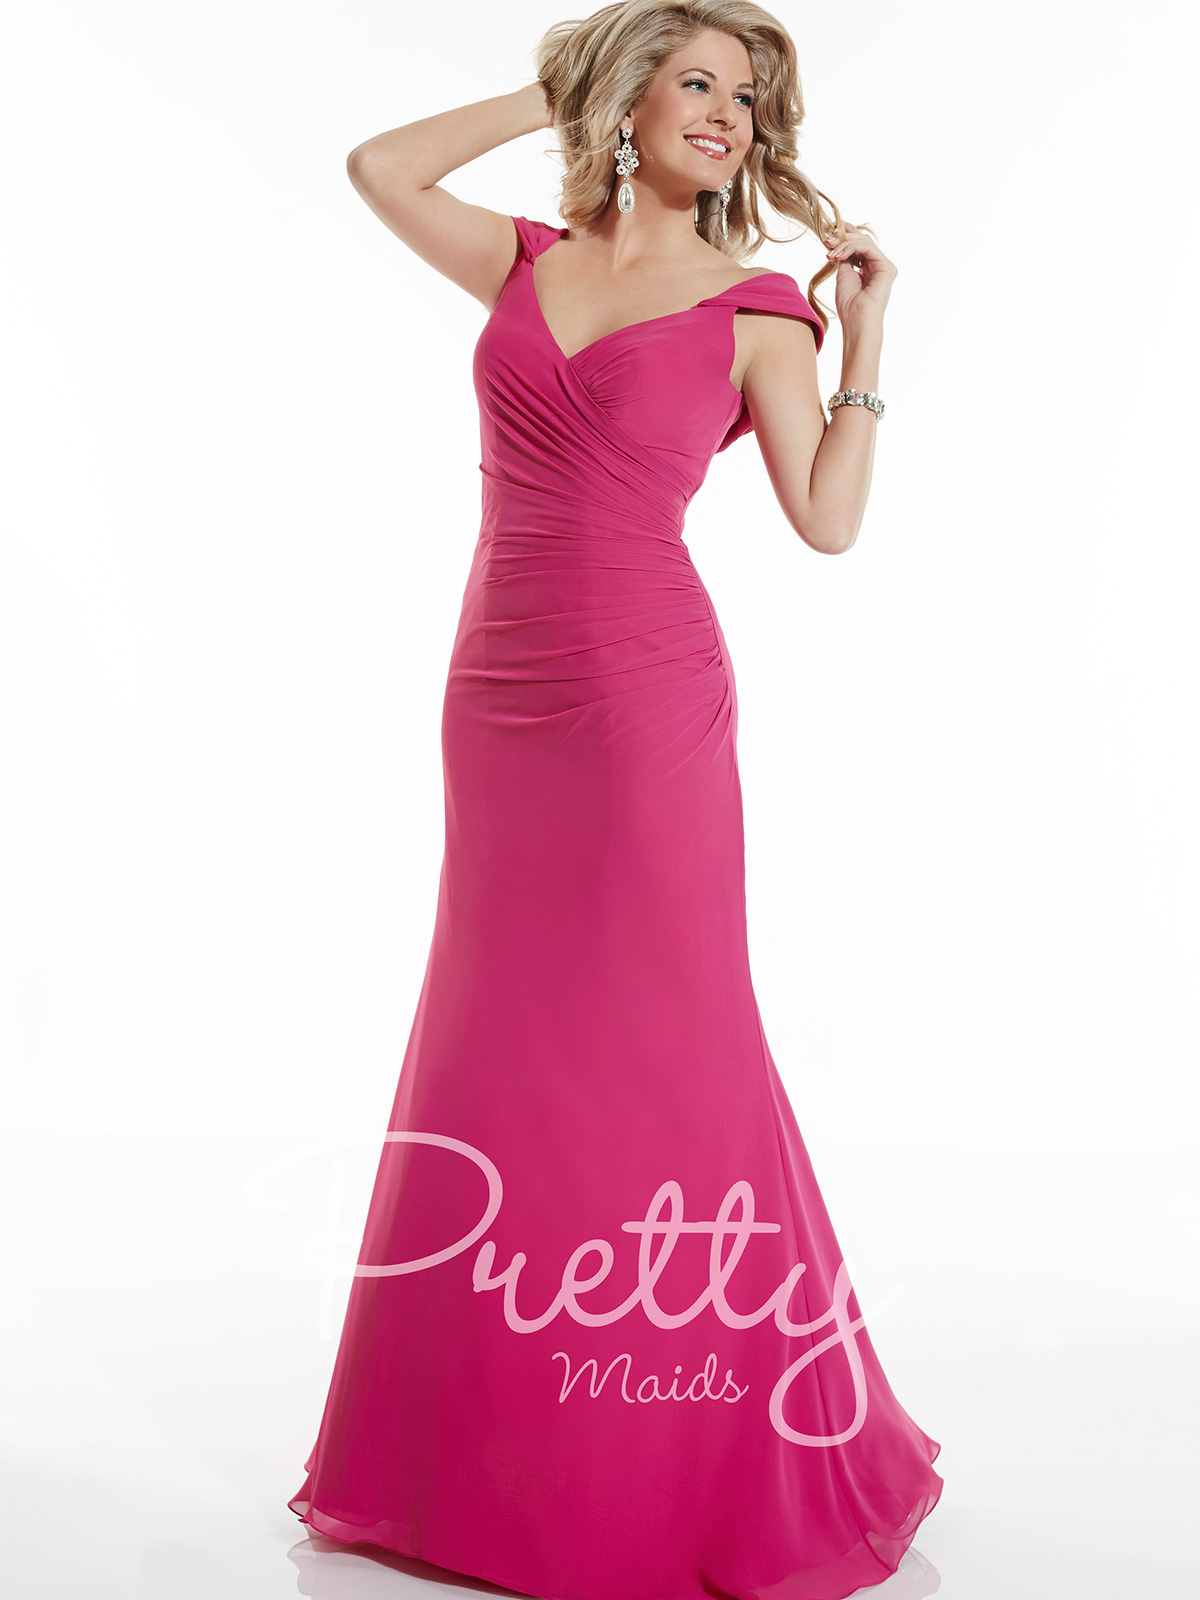 Pretty Maids Bridesmaid Dress 22622: DimitraDesigns.com